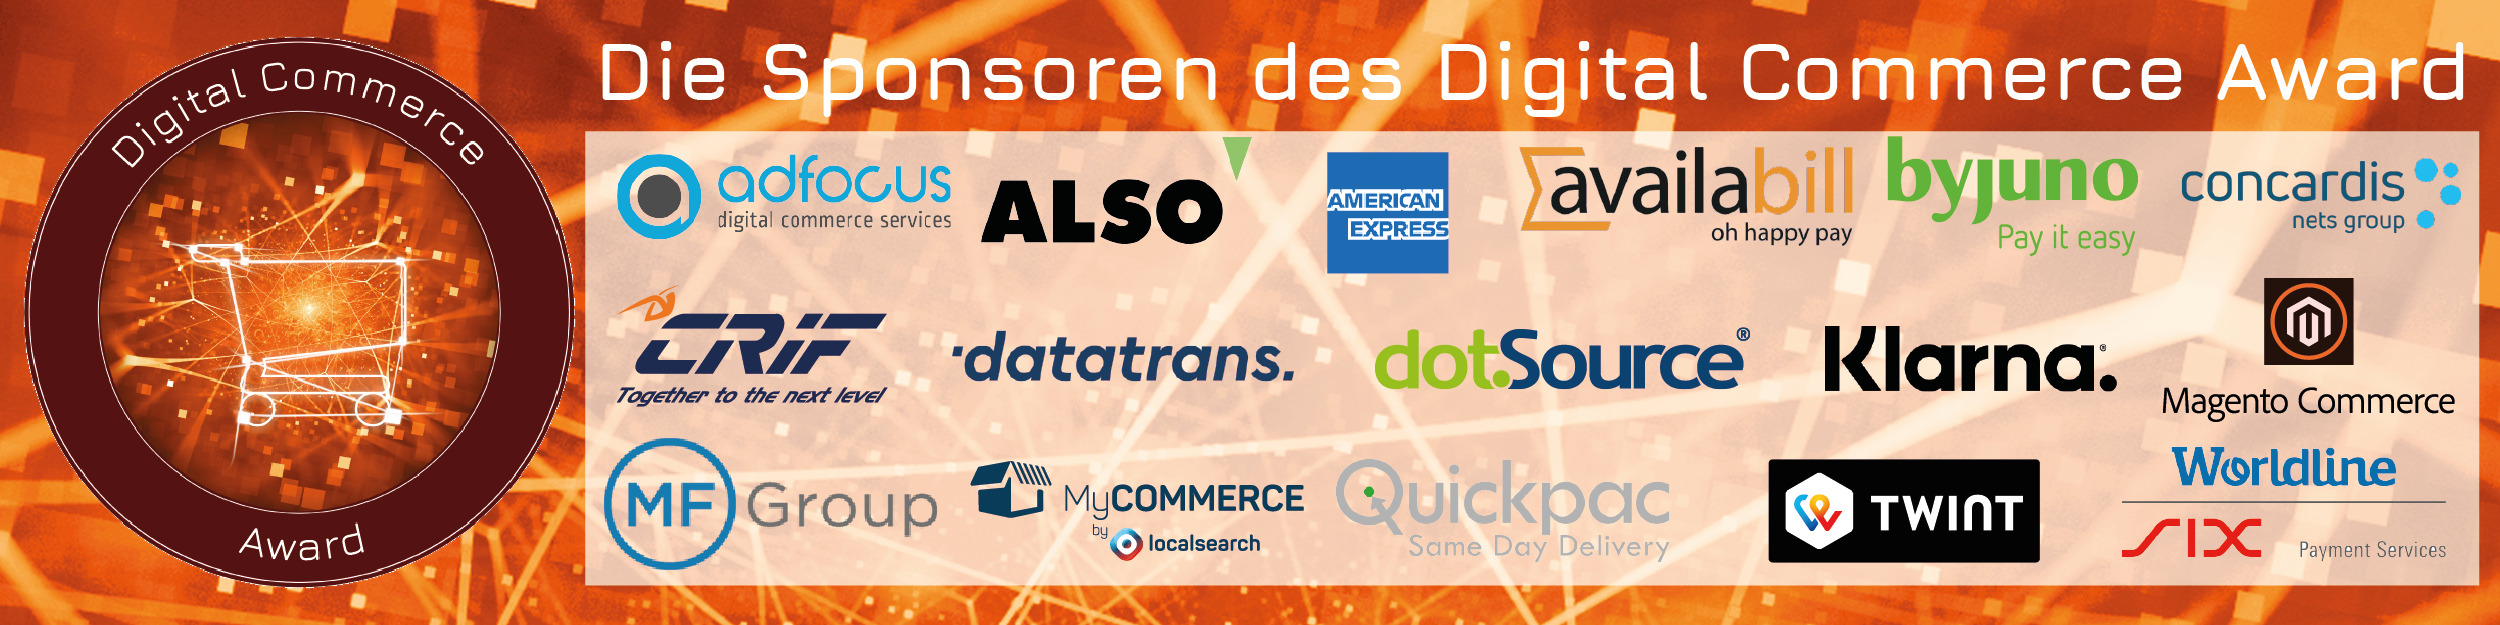 https://digital-commerce-award.ch/sponsoring/unsere-sponsoren/